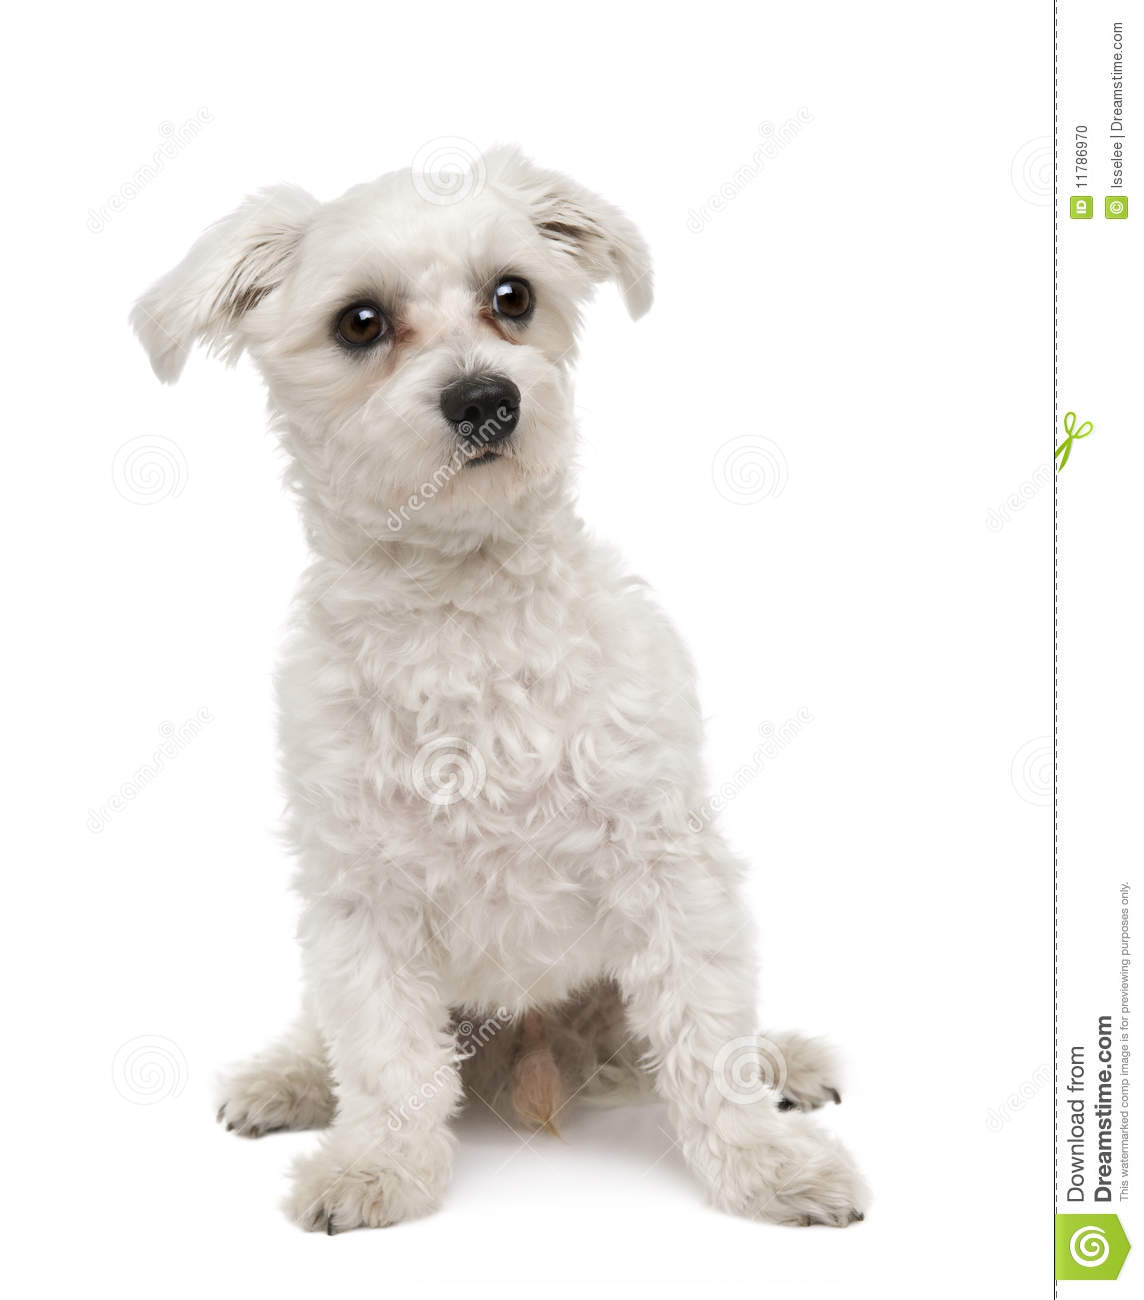 Maltese dog, in front of a white background